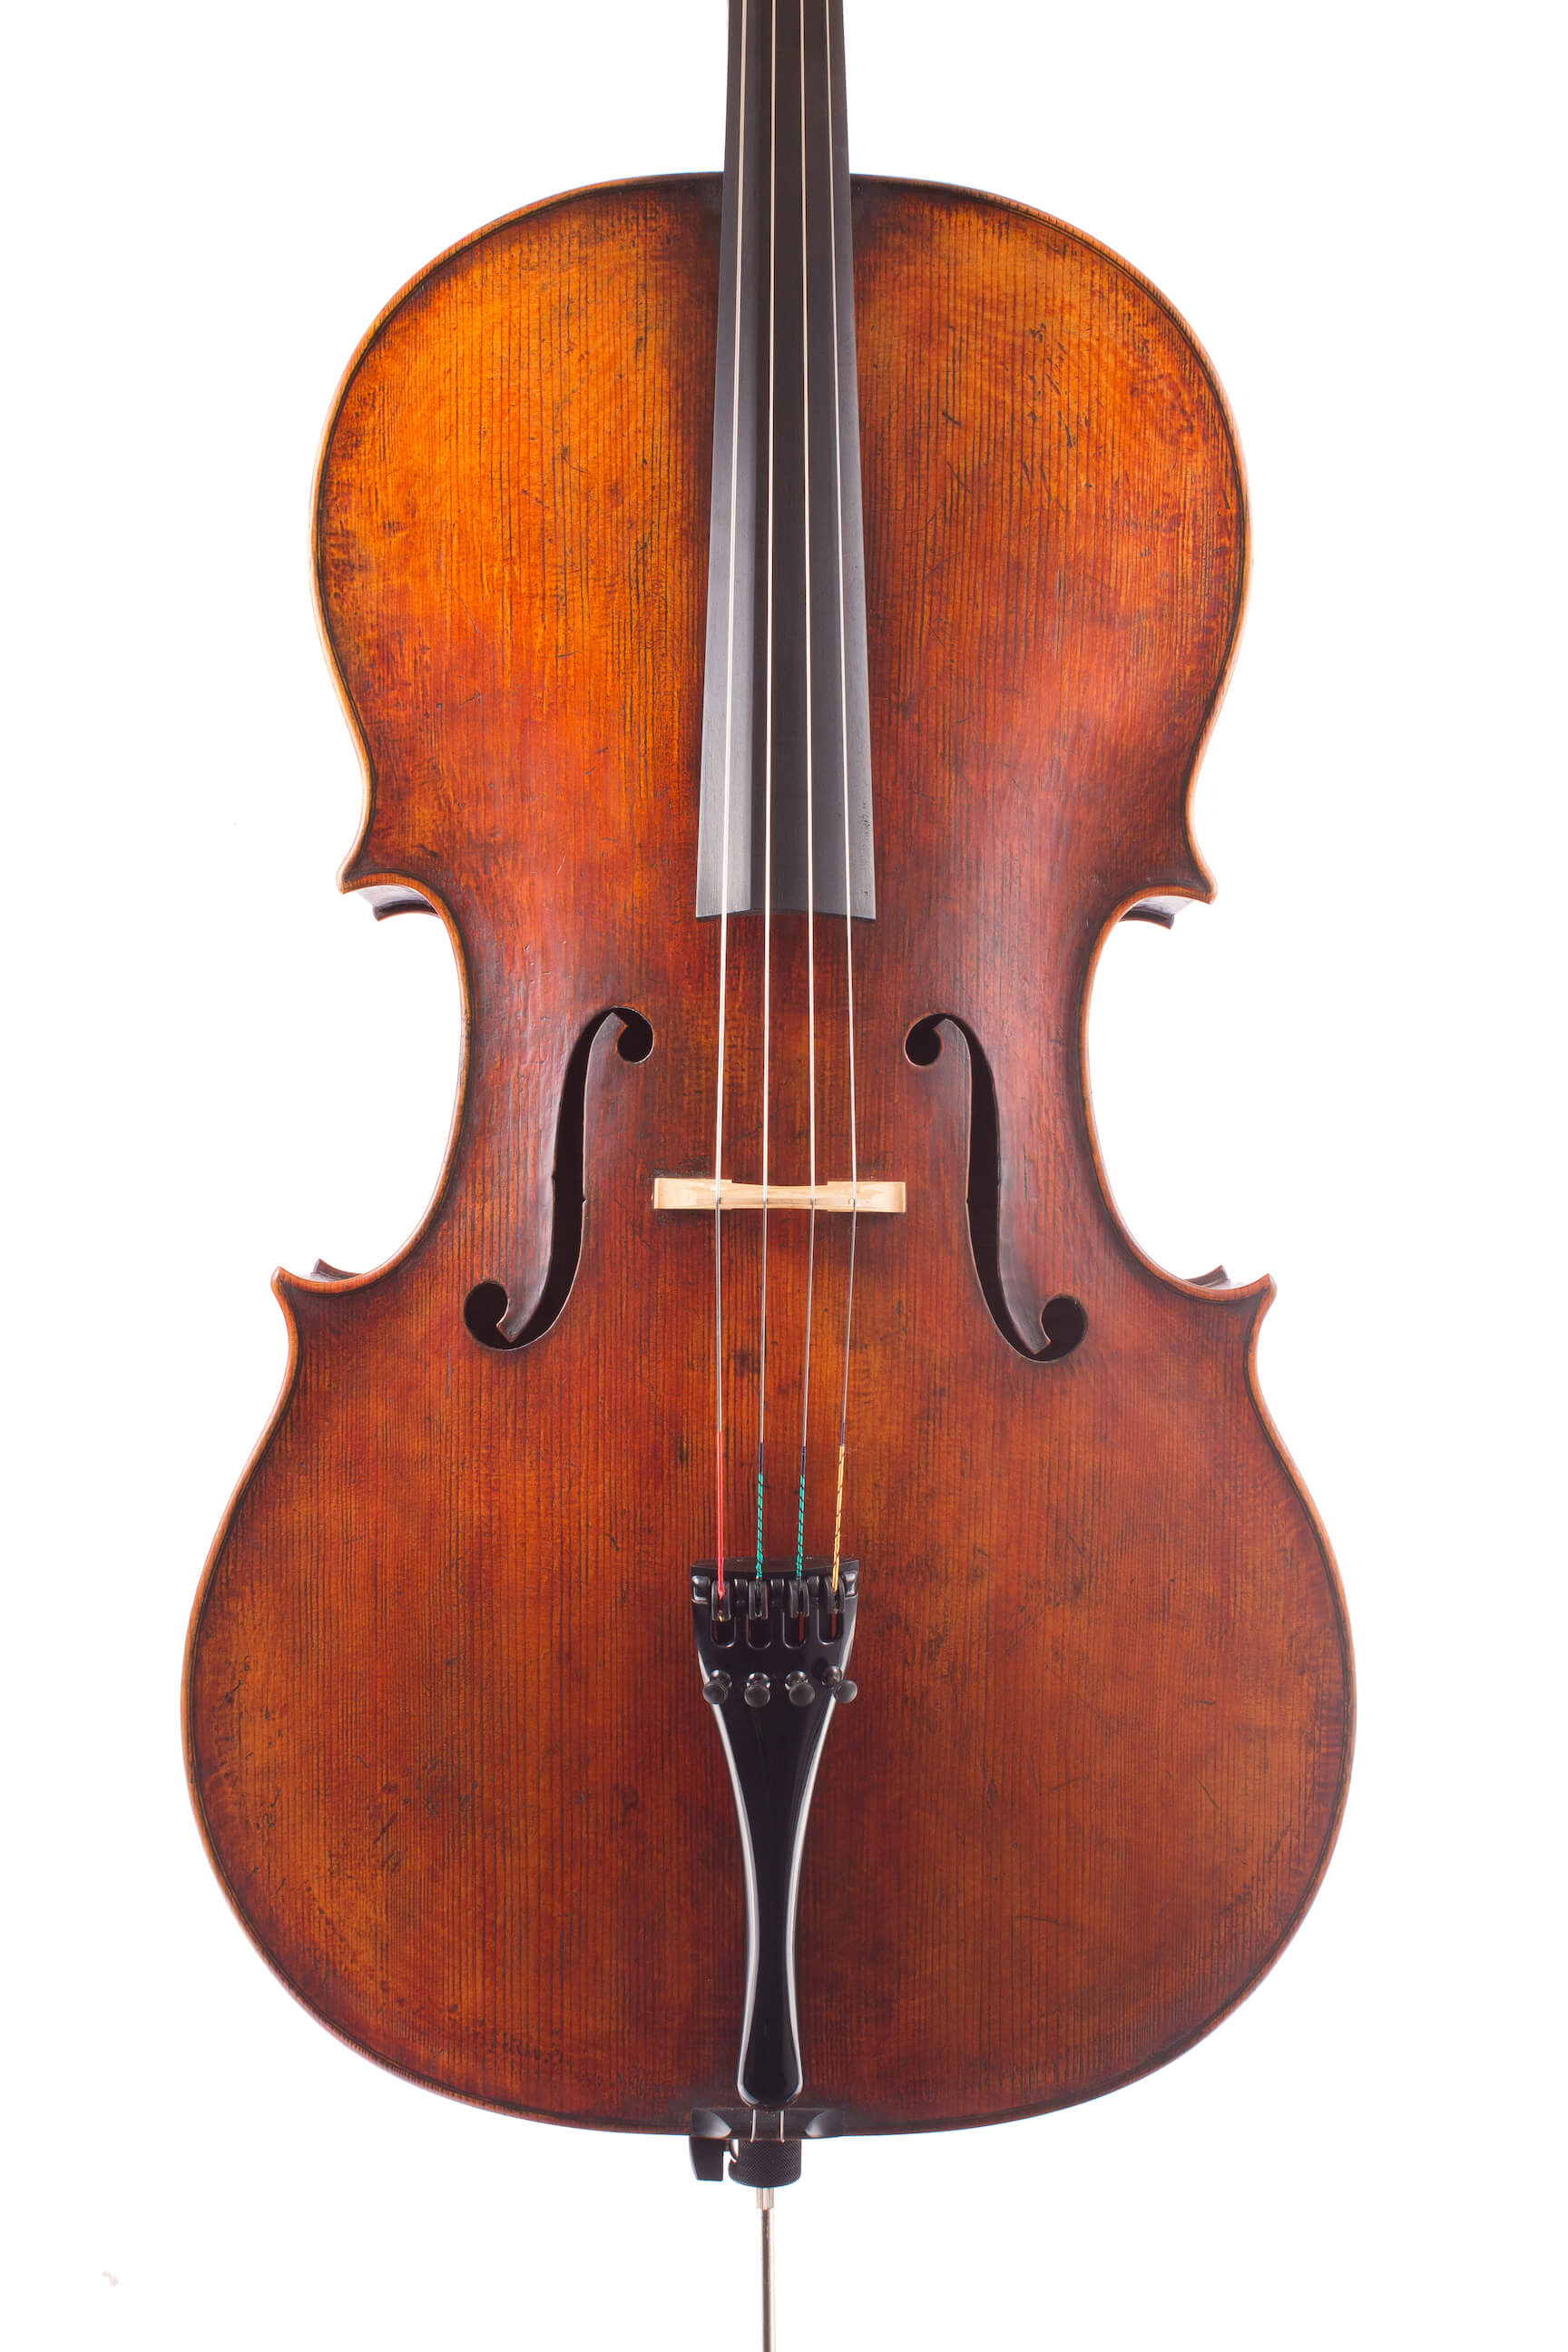 Cello by Luiz Amorim, Goffriller model, 2017